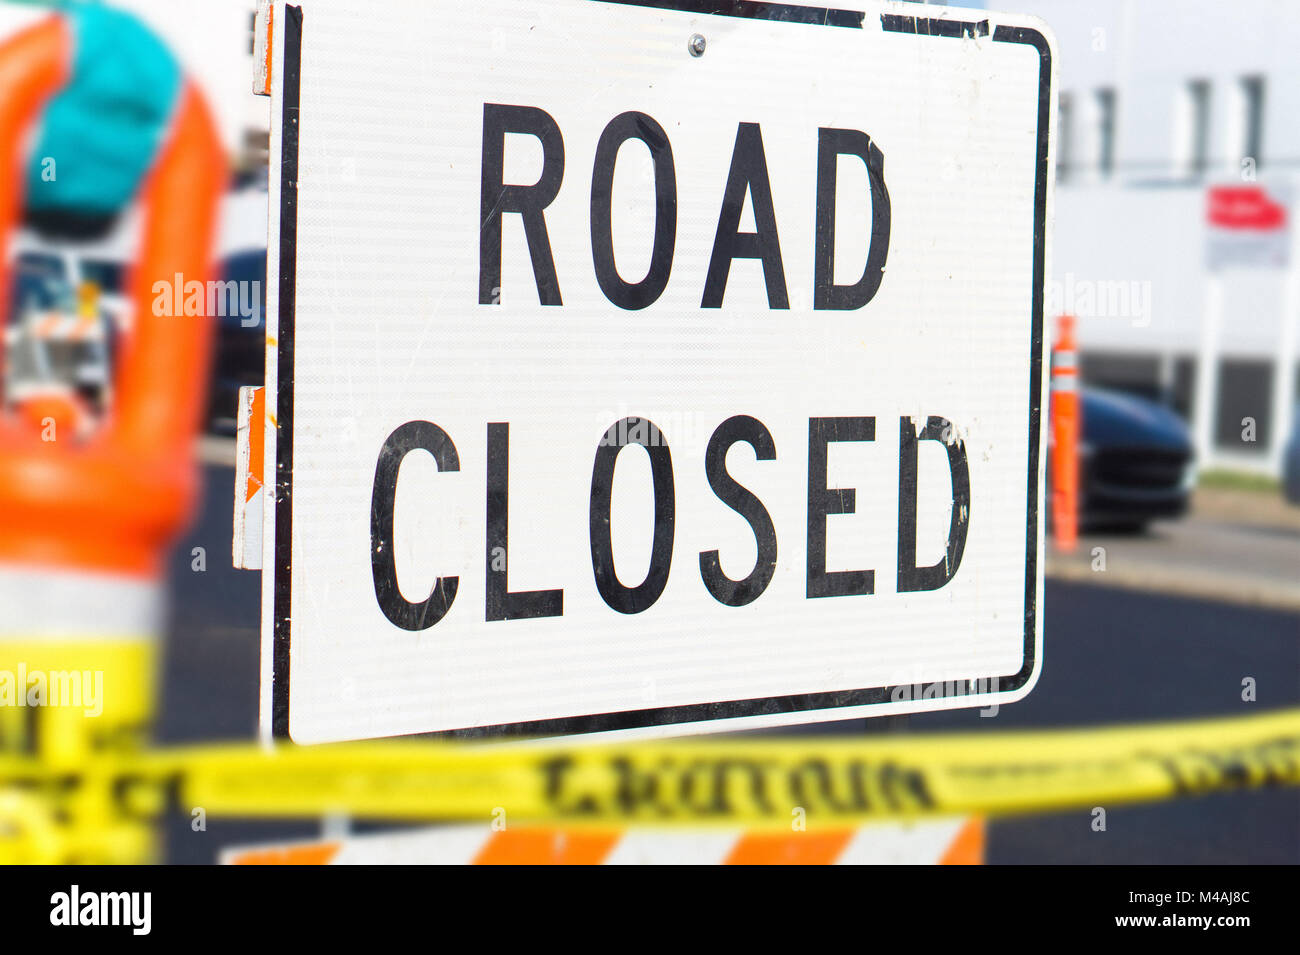 Road closed sign and block in a busy city street in the middle of traffic. Roadblock in a highway. - Stock Image